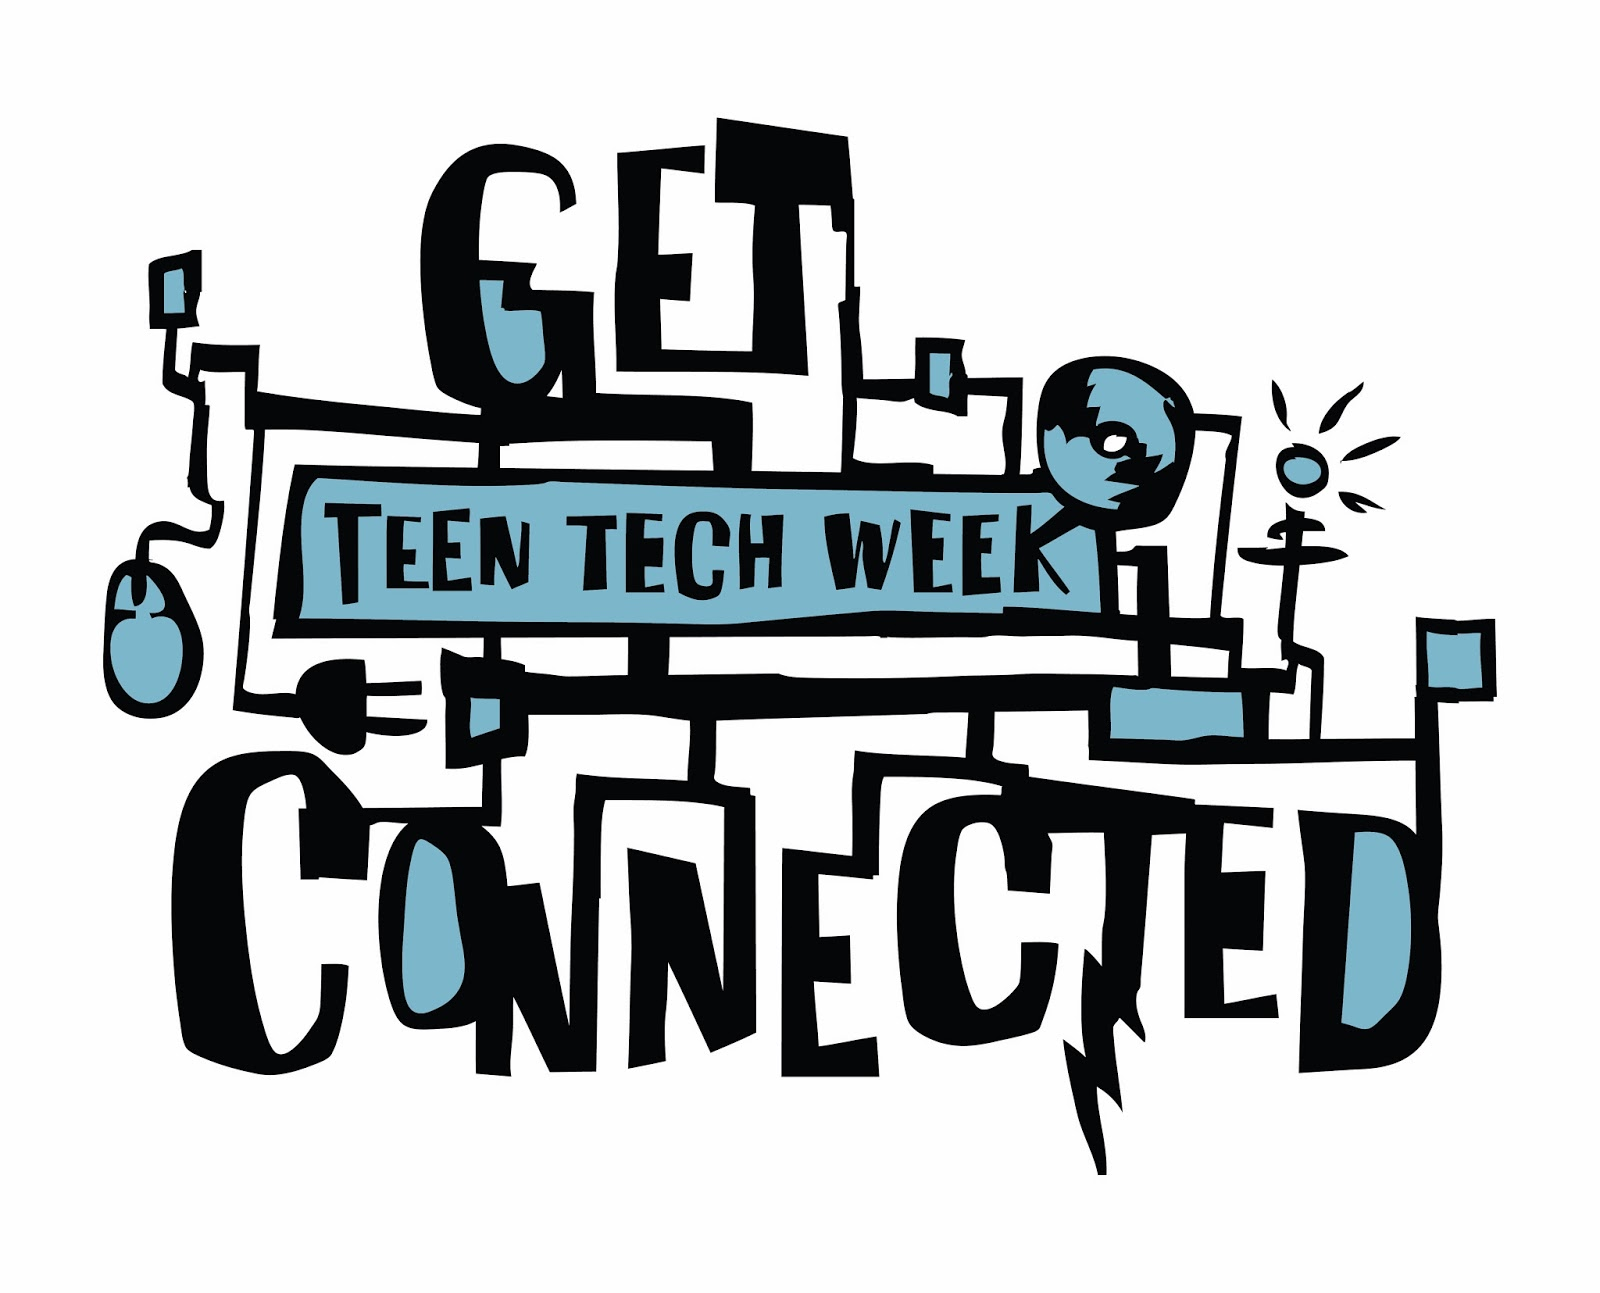 Join. teen tech week yalsa